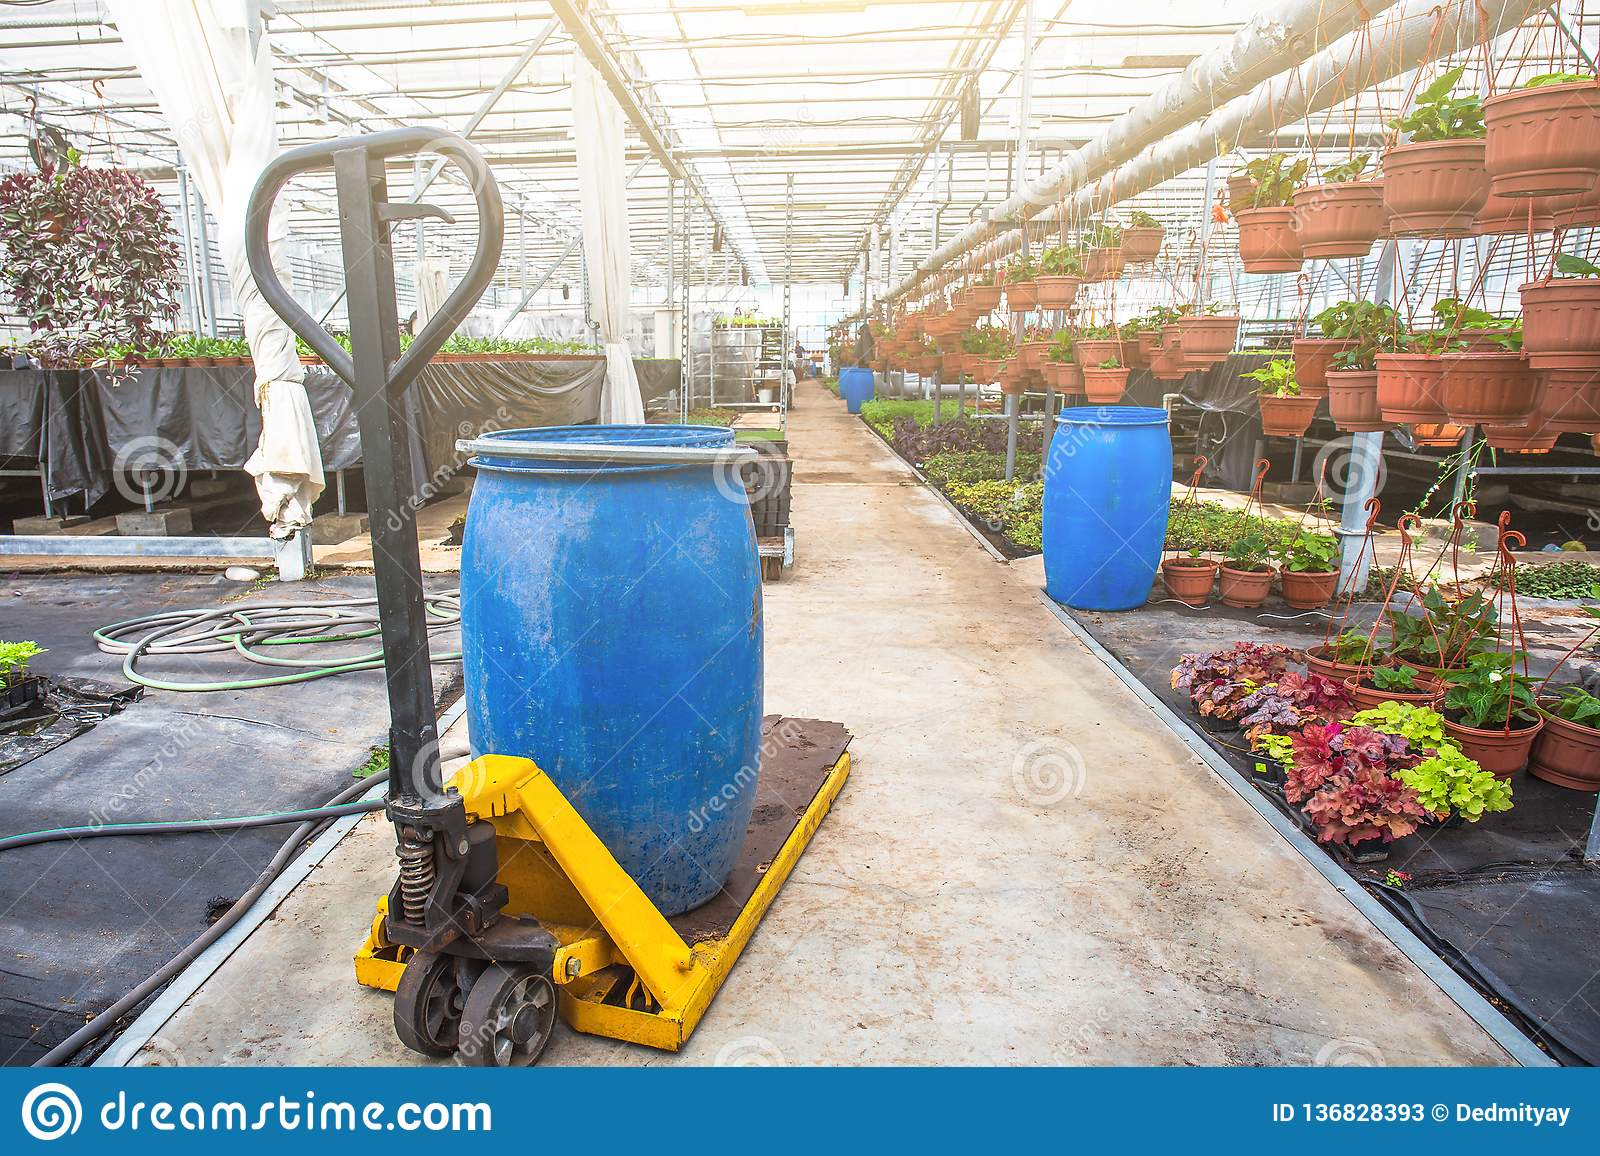 Modern hydroponic greenhouse interior with climate control, cultivation of seedings, flowers. Industrial horticulture